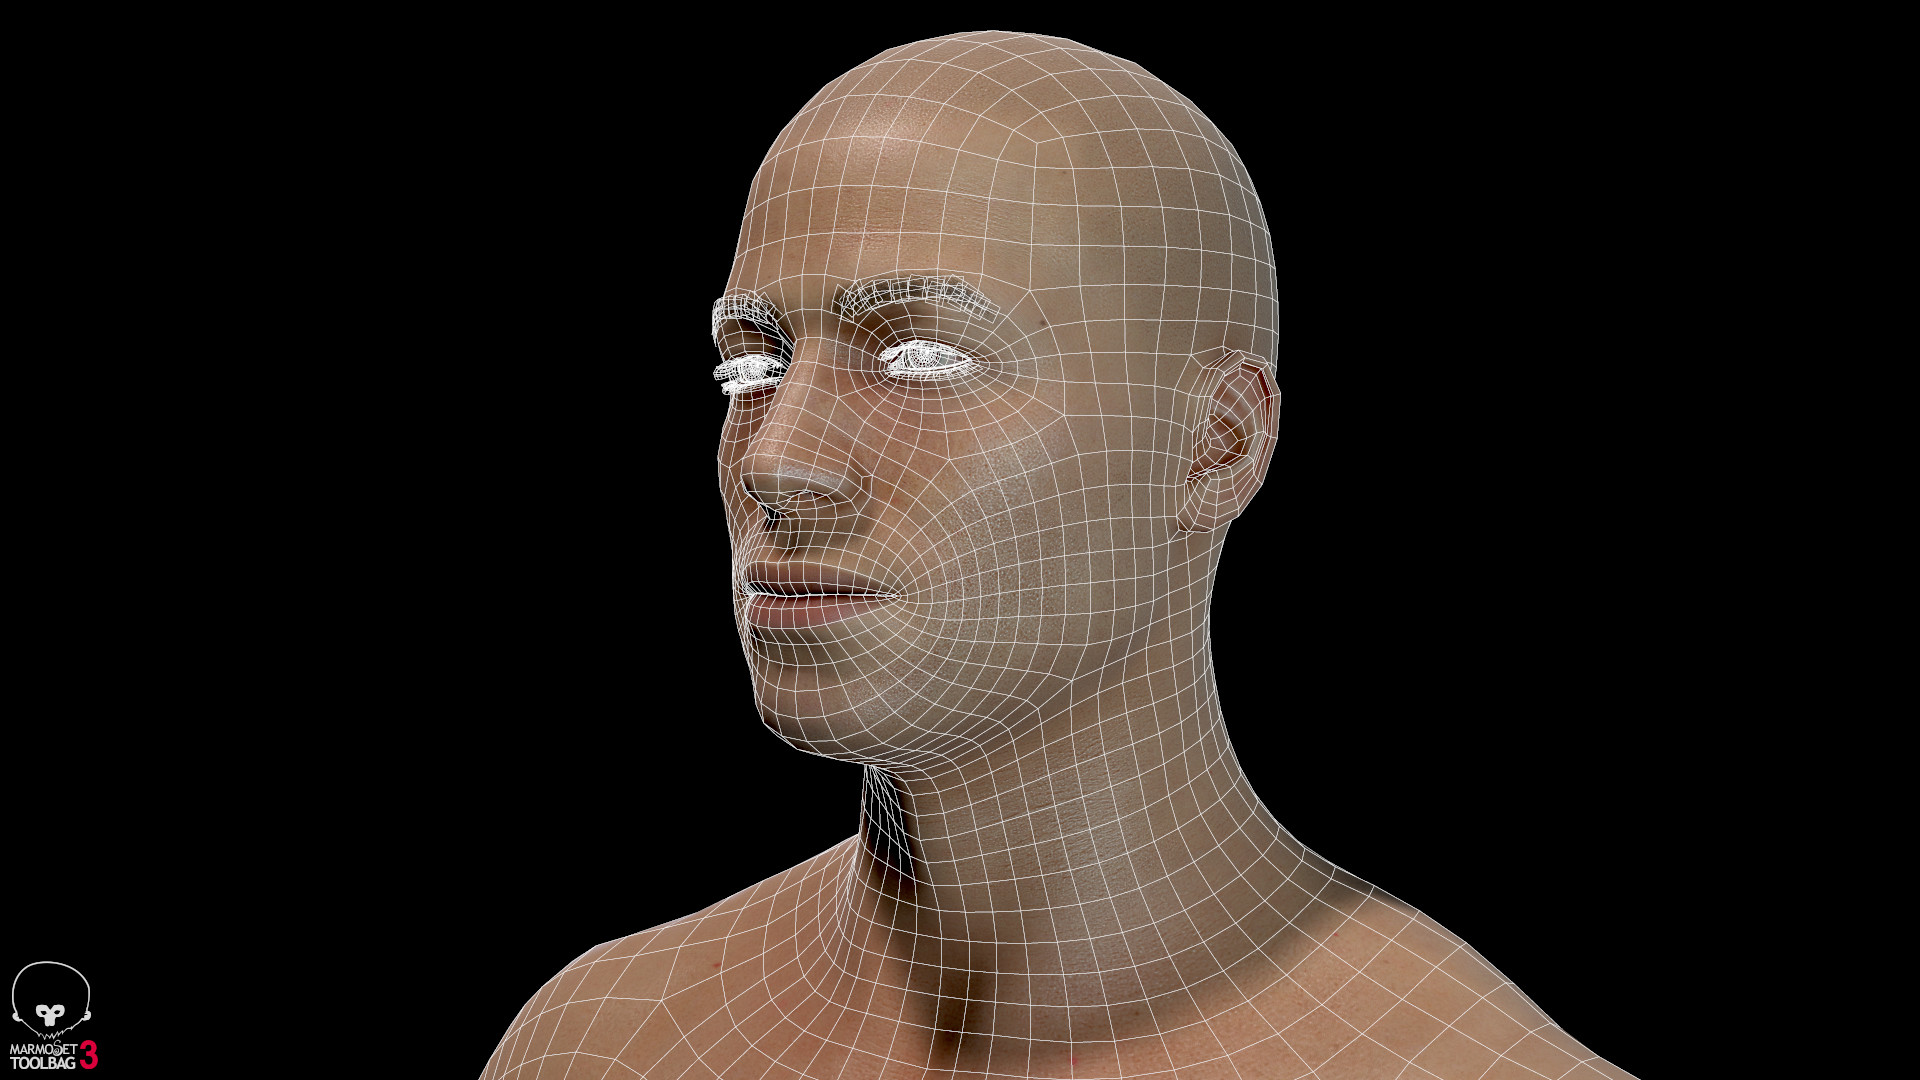 Alex lashko averagemalebody by alexlashko wireframe 07